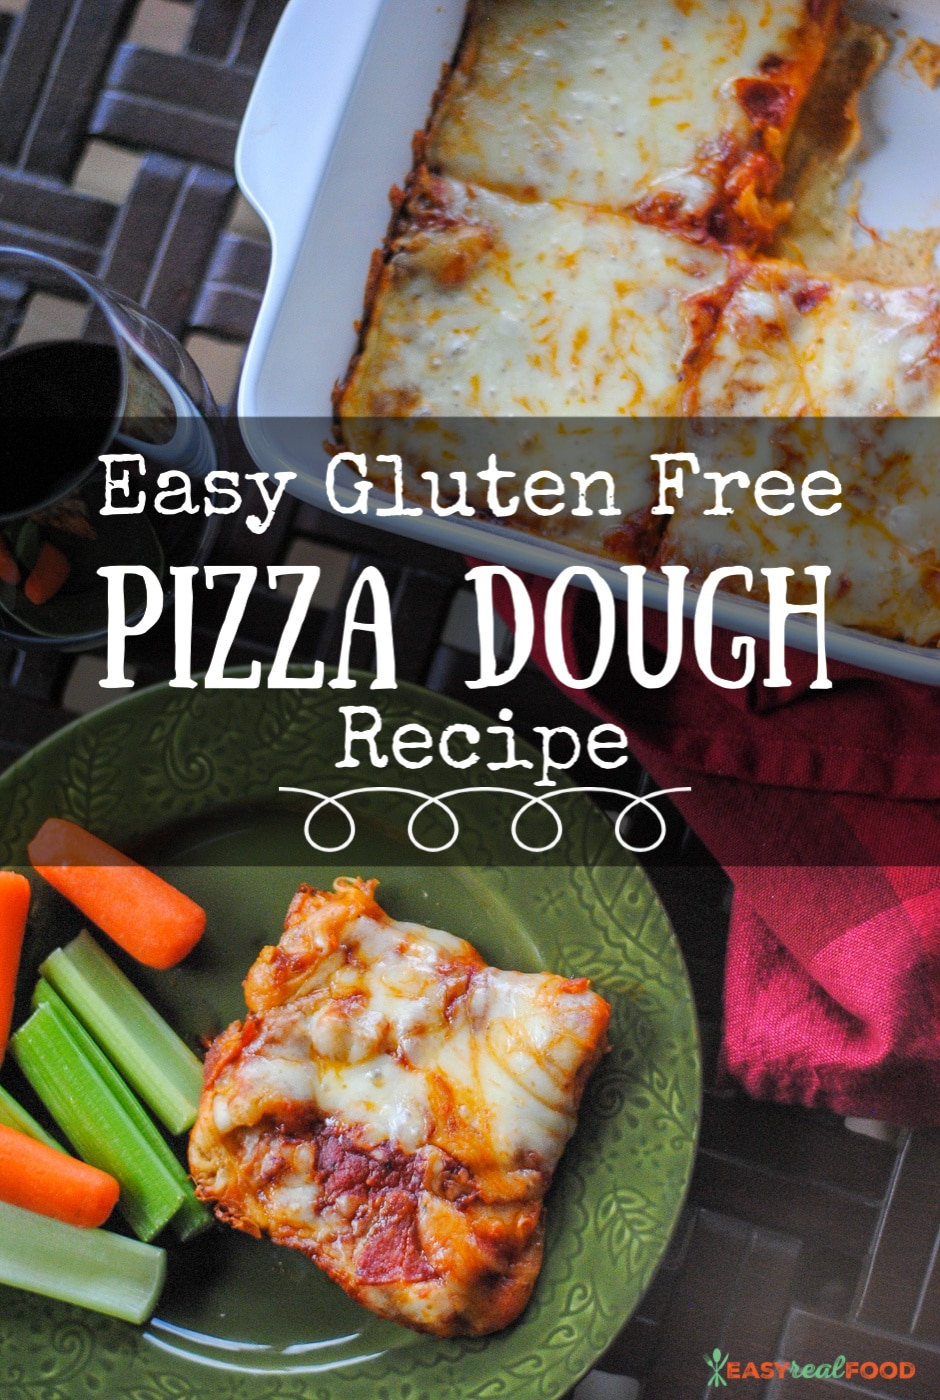 Easy Gluten Free (and yeast-free) Pizza Dough Recipe - #easydinner #glutenfree